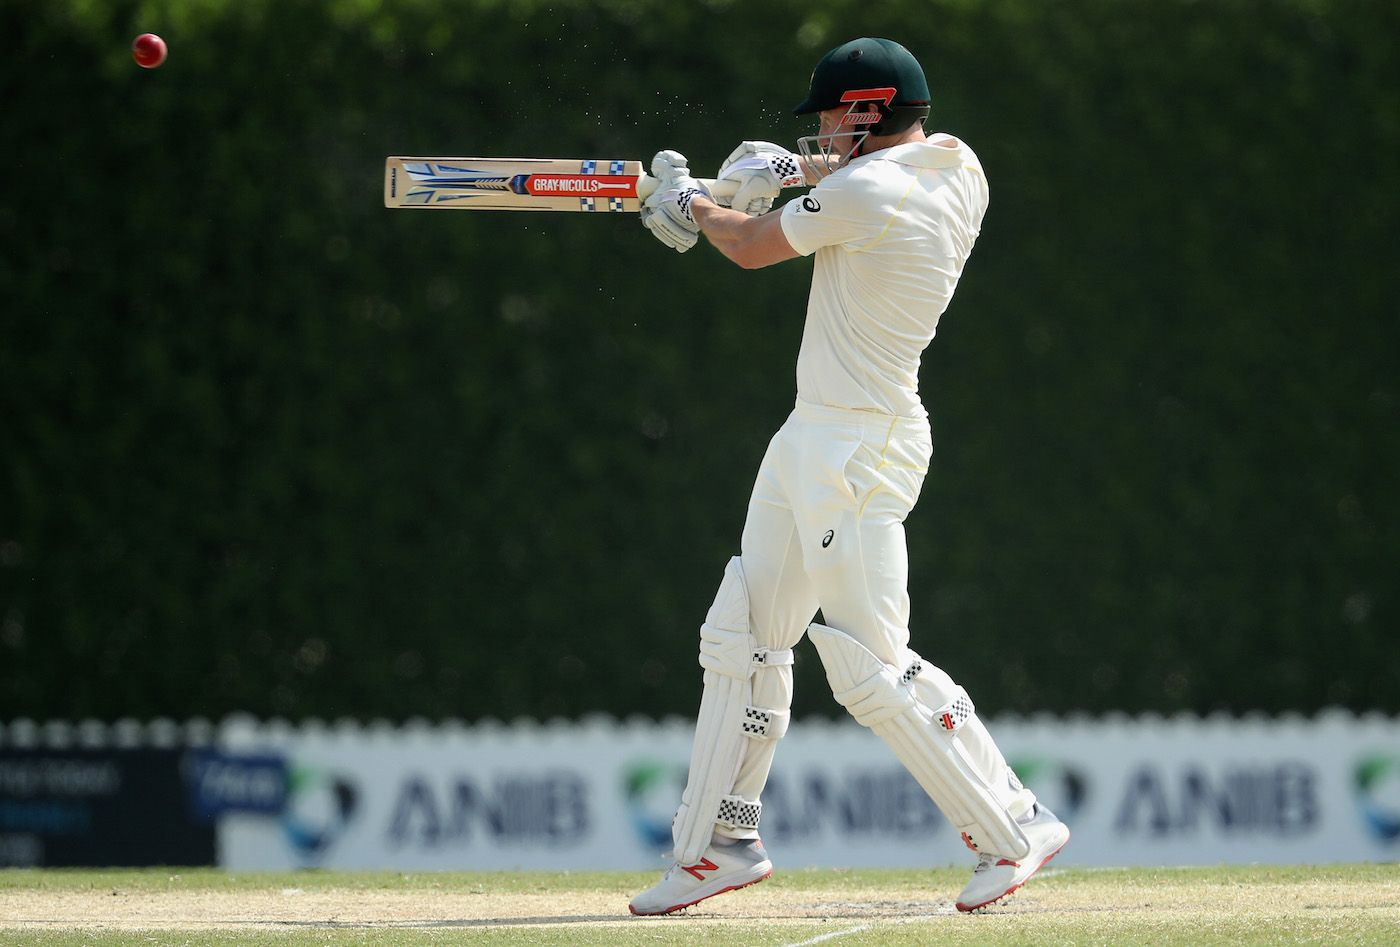 Shaun Marsh has been in fine form for WA in the Sheffield Shield.